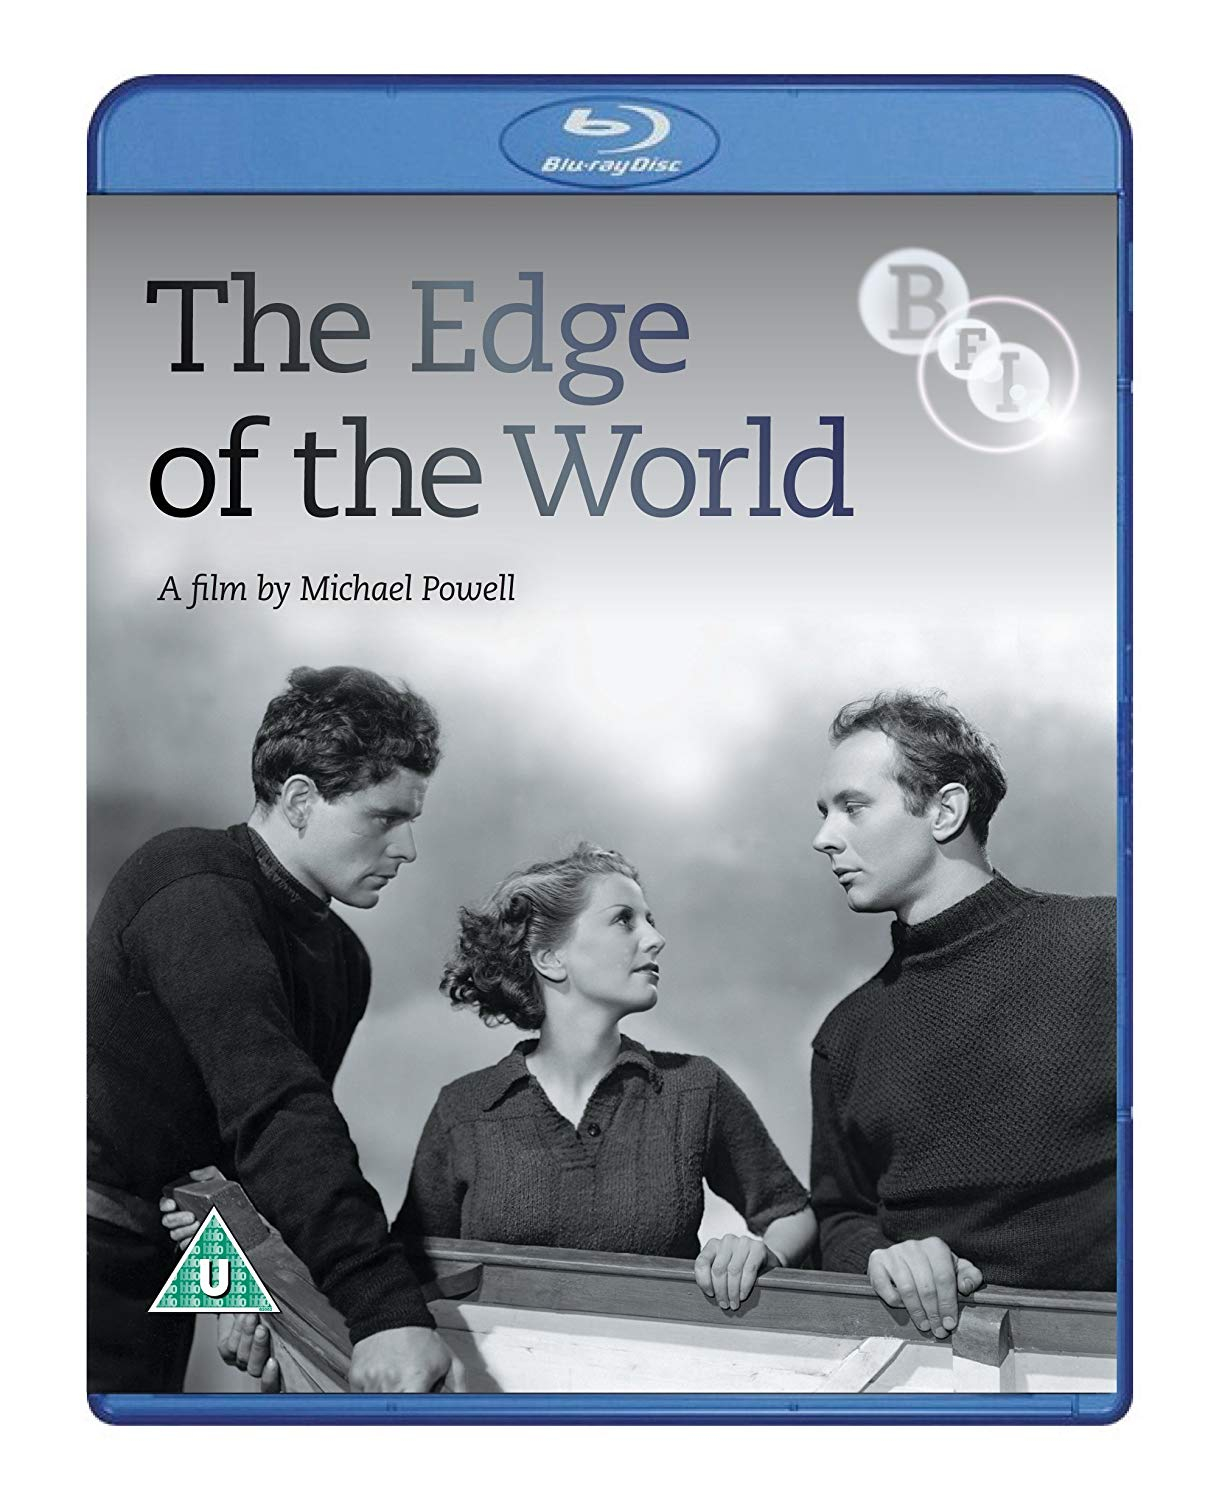 Buy The Edge of the World (Blu-ray)